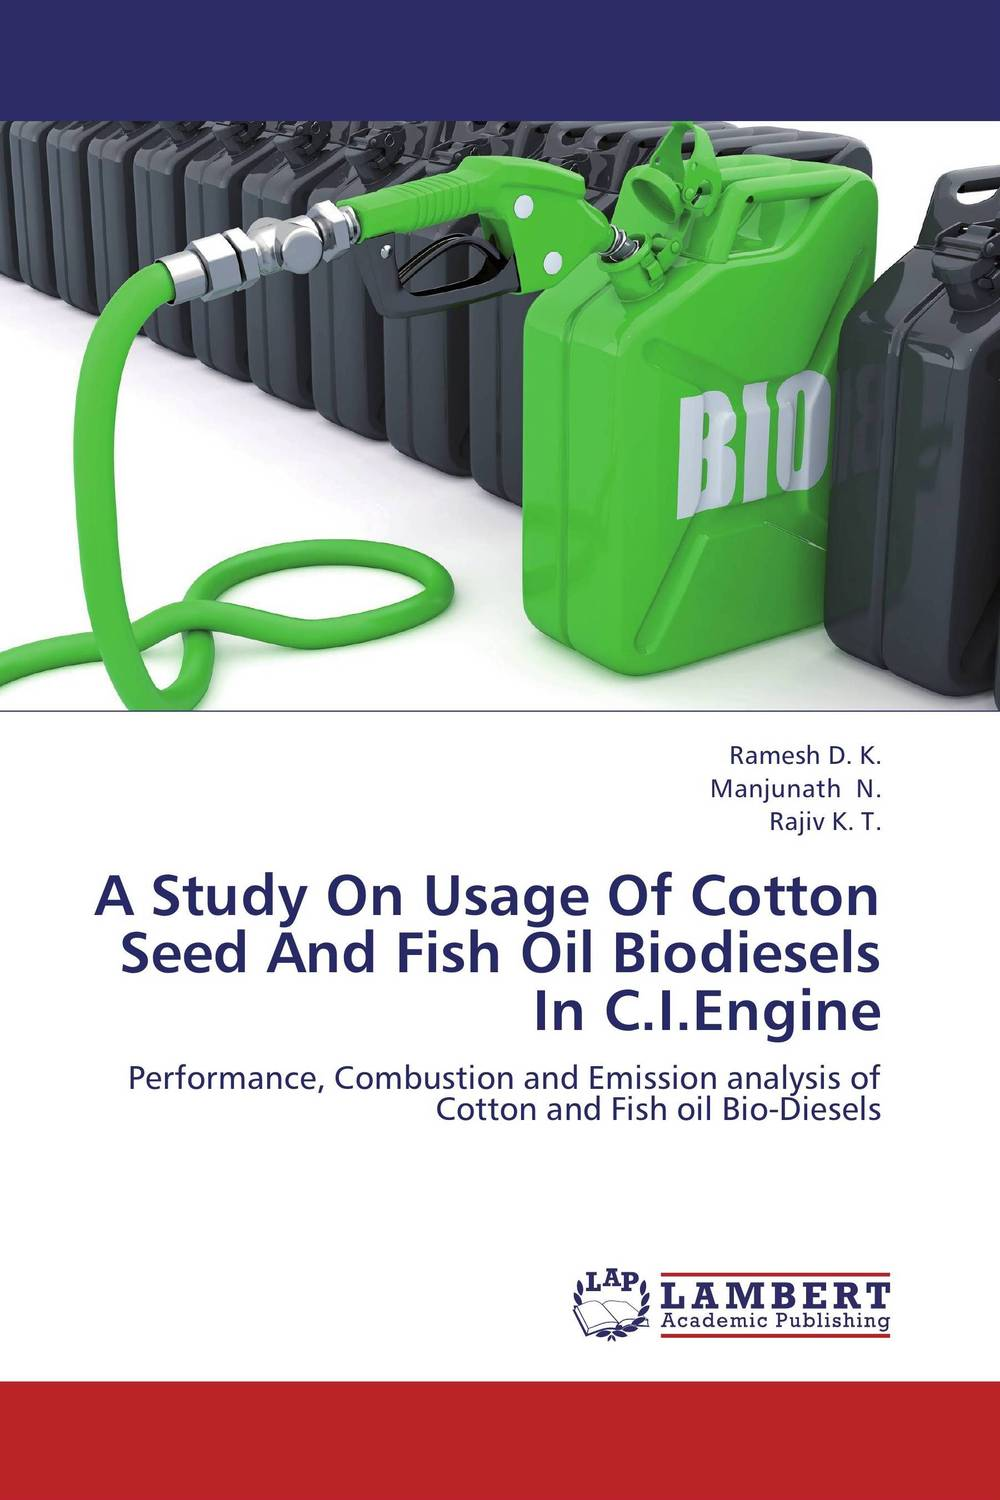 A Study On Usage Of Cotton Seed And Fish Oil Biodiesels In C.I.Engine a study on vcr diesel engine with preheated cottonseed methyl ester